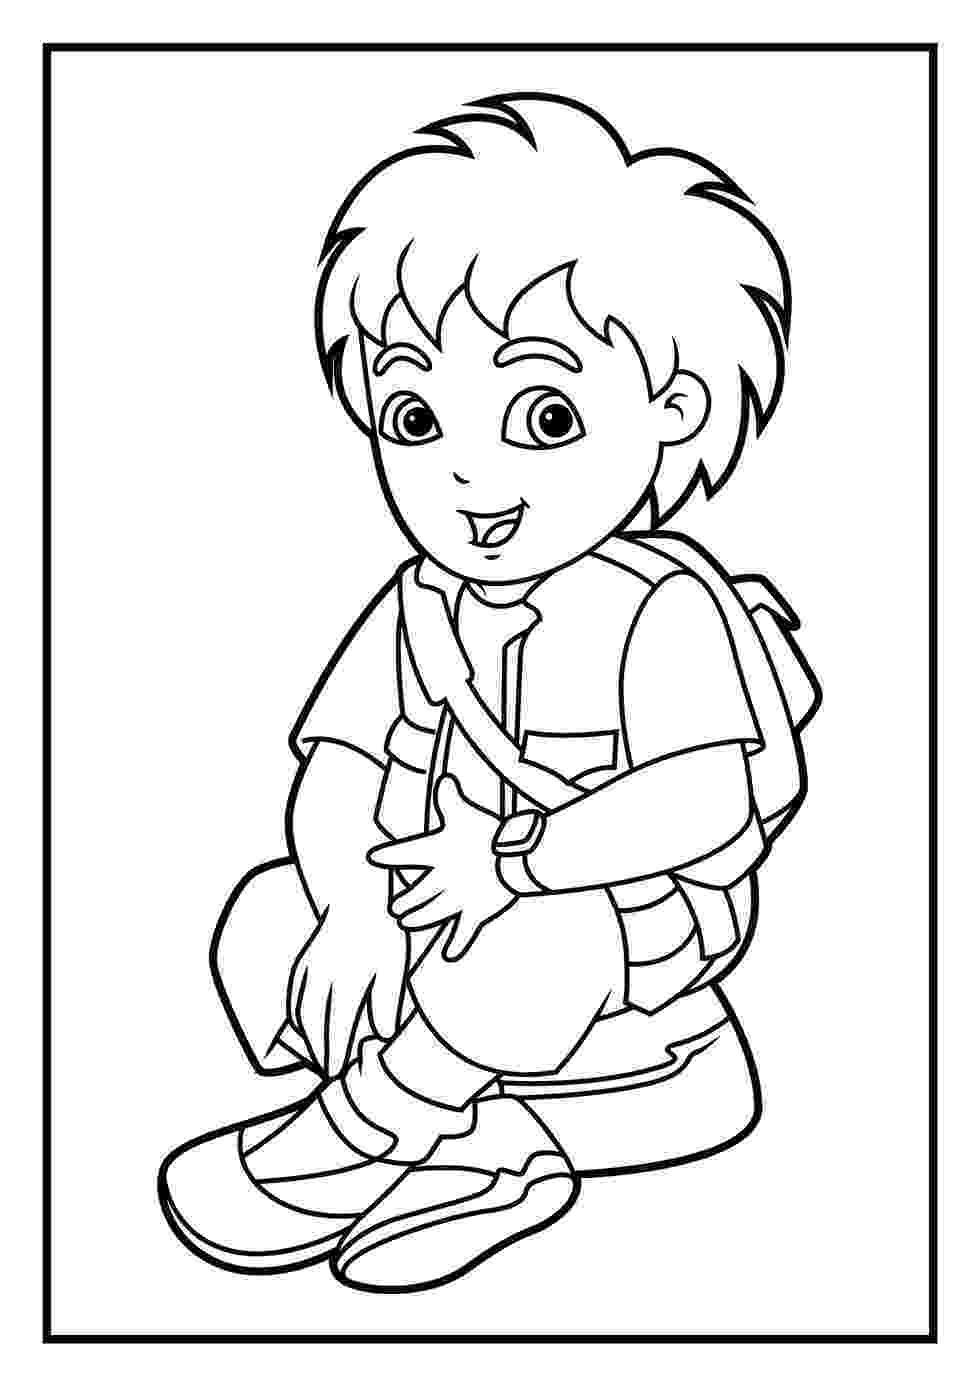 coloring pages to color disney emojis coloring pages disneyclipscom to coloring color pages